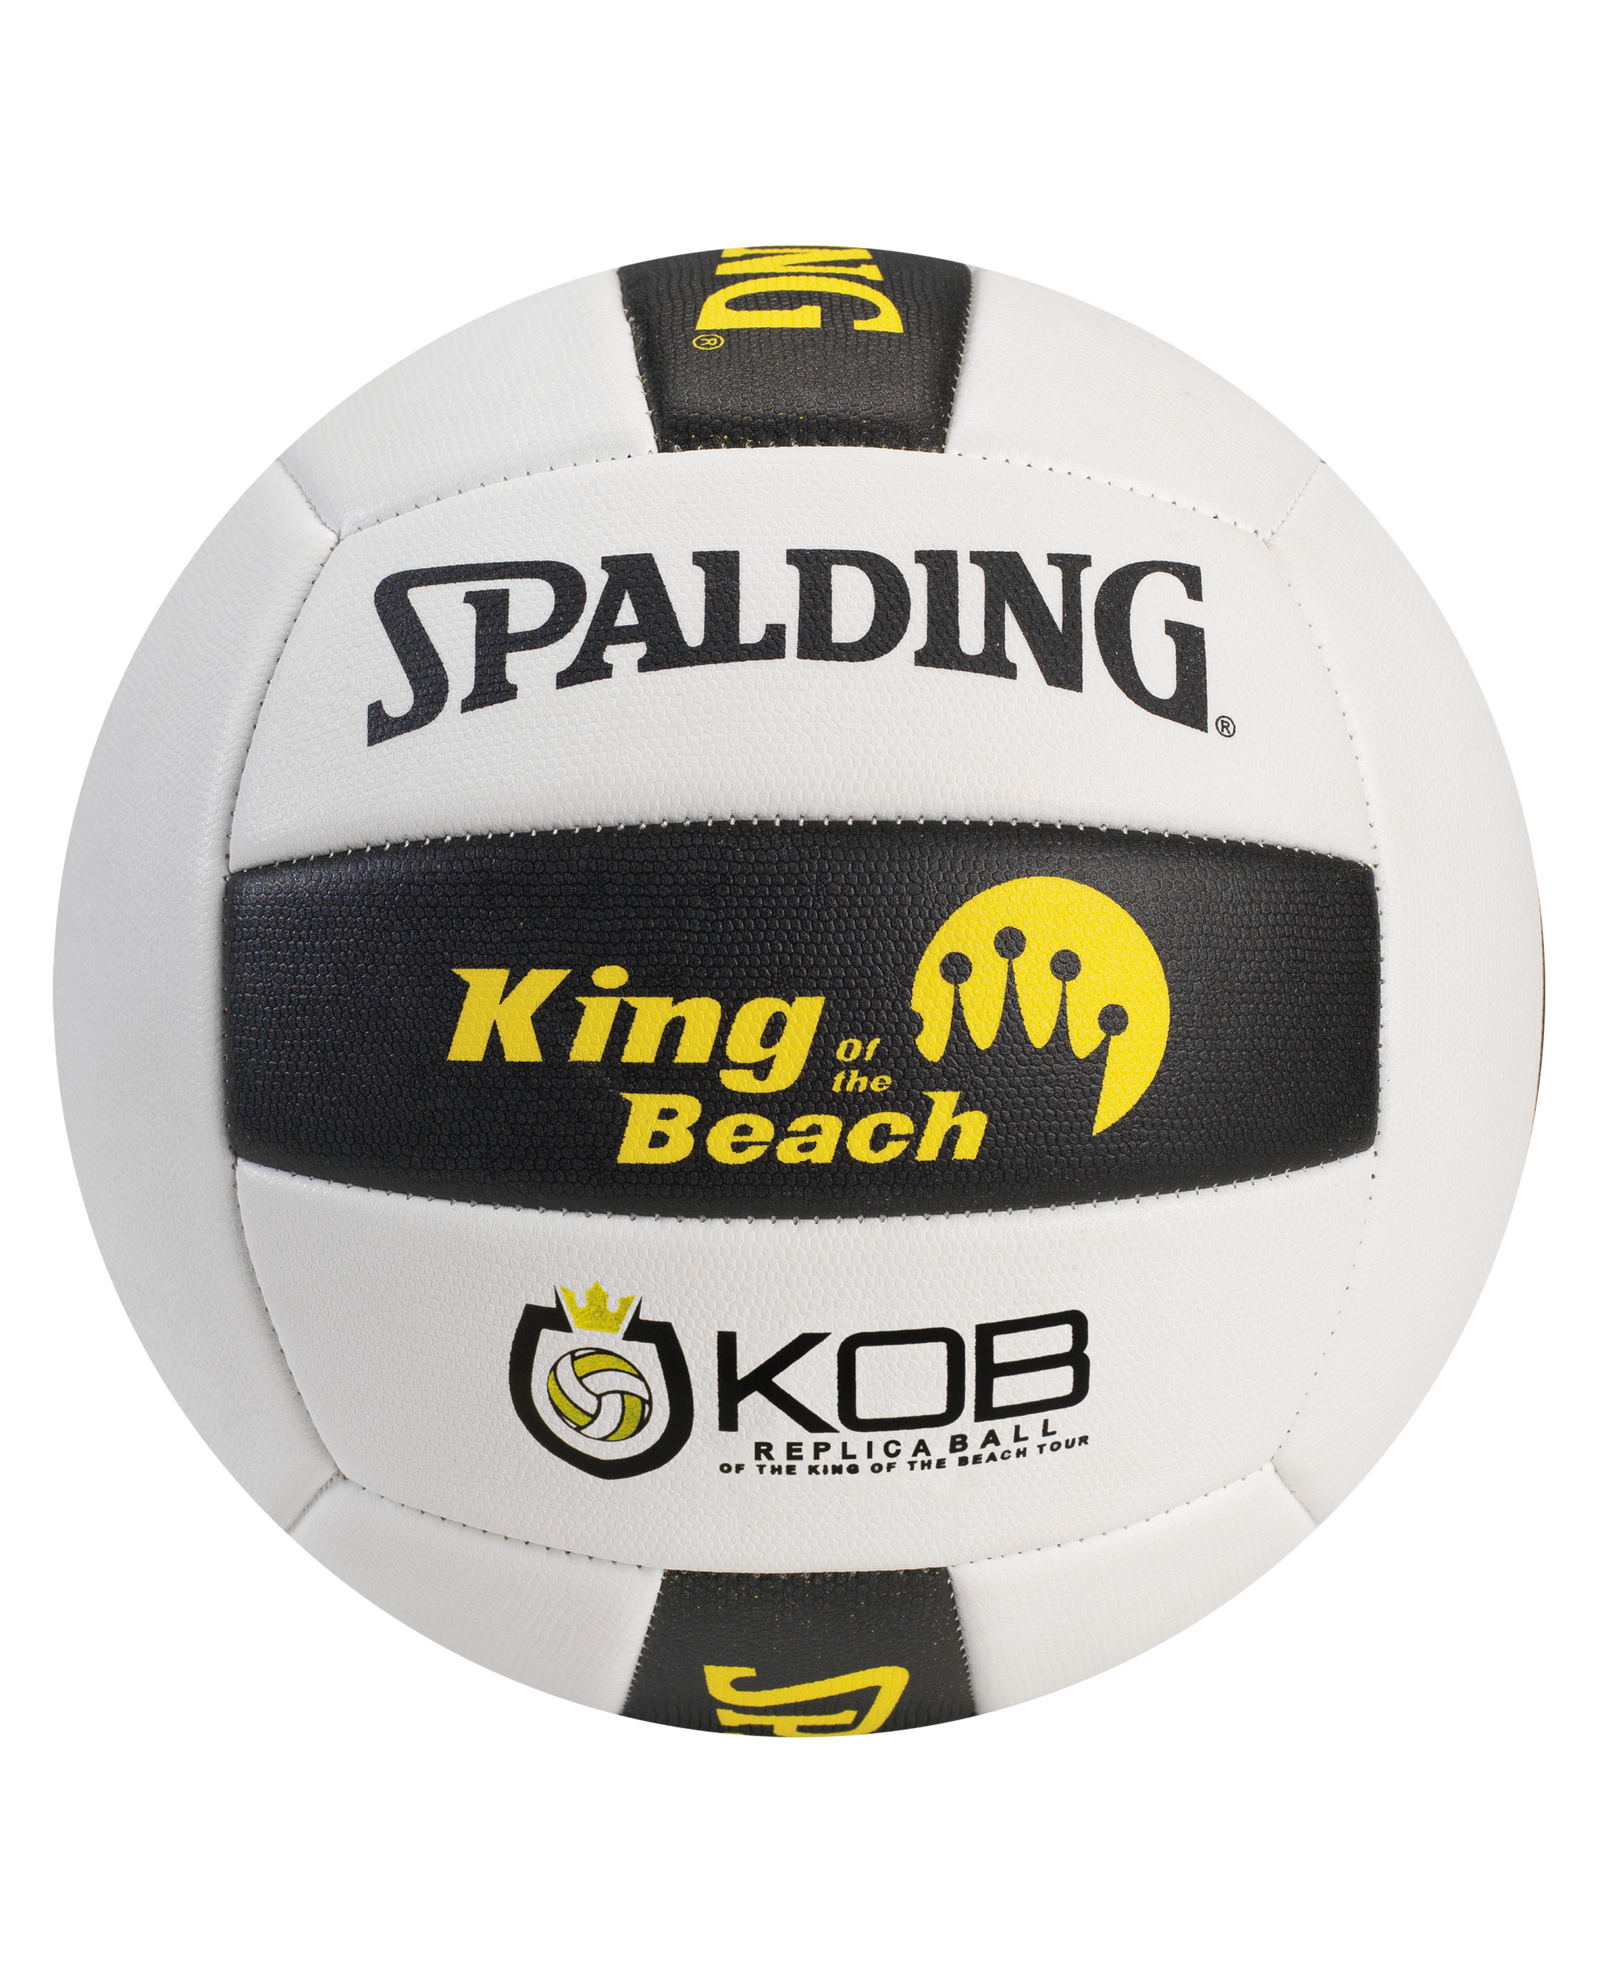 spalding volleyball black and white